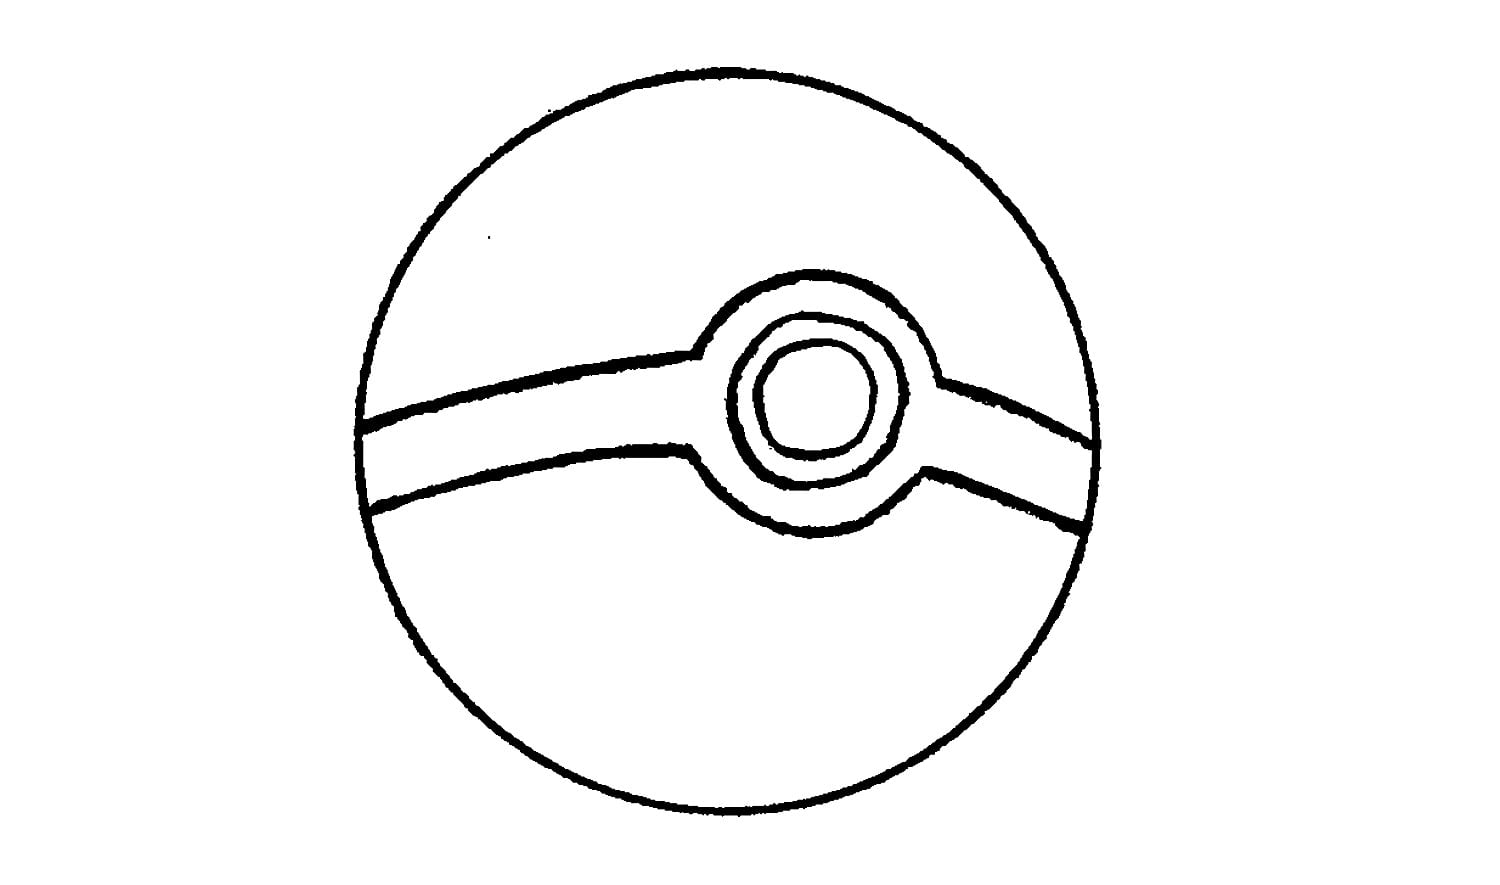 How To Draw A Pokeball From Pokémon (easy)